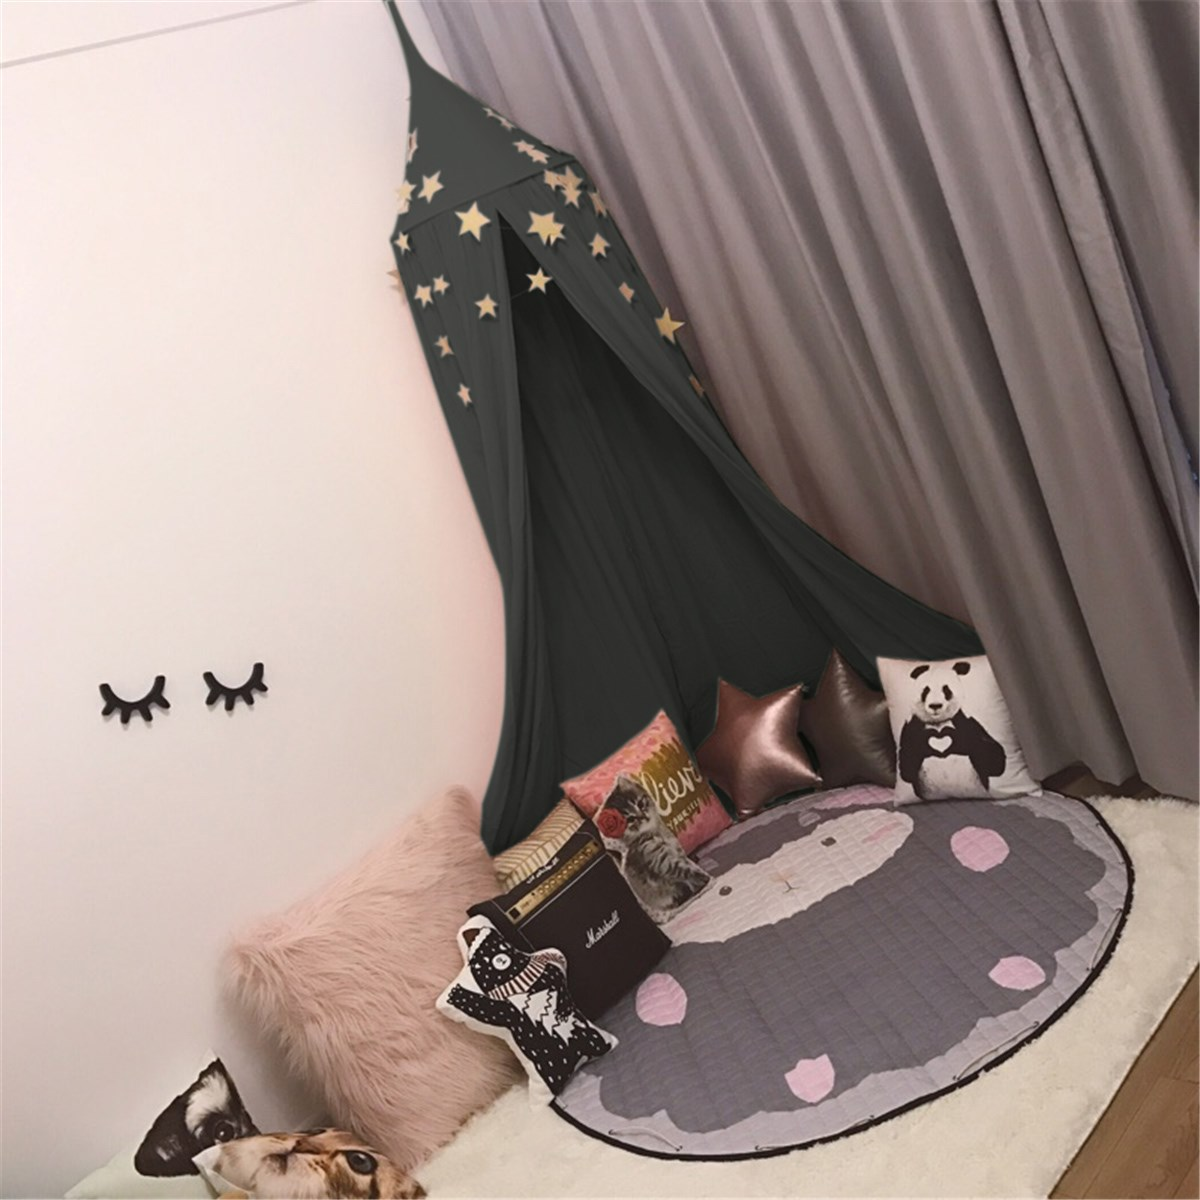 Dark Green Cotton Mosquito Net Baby Kids Reading Play Tents Canopy Bed Netting Valance Home Outdoor & Online Get Cheap Kids Bed Play Tents -Aliexpress.com | Alibaba Group